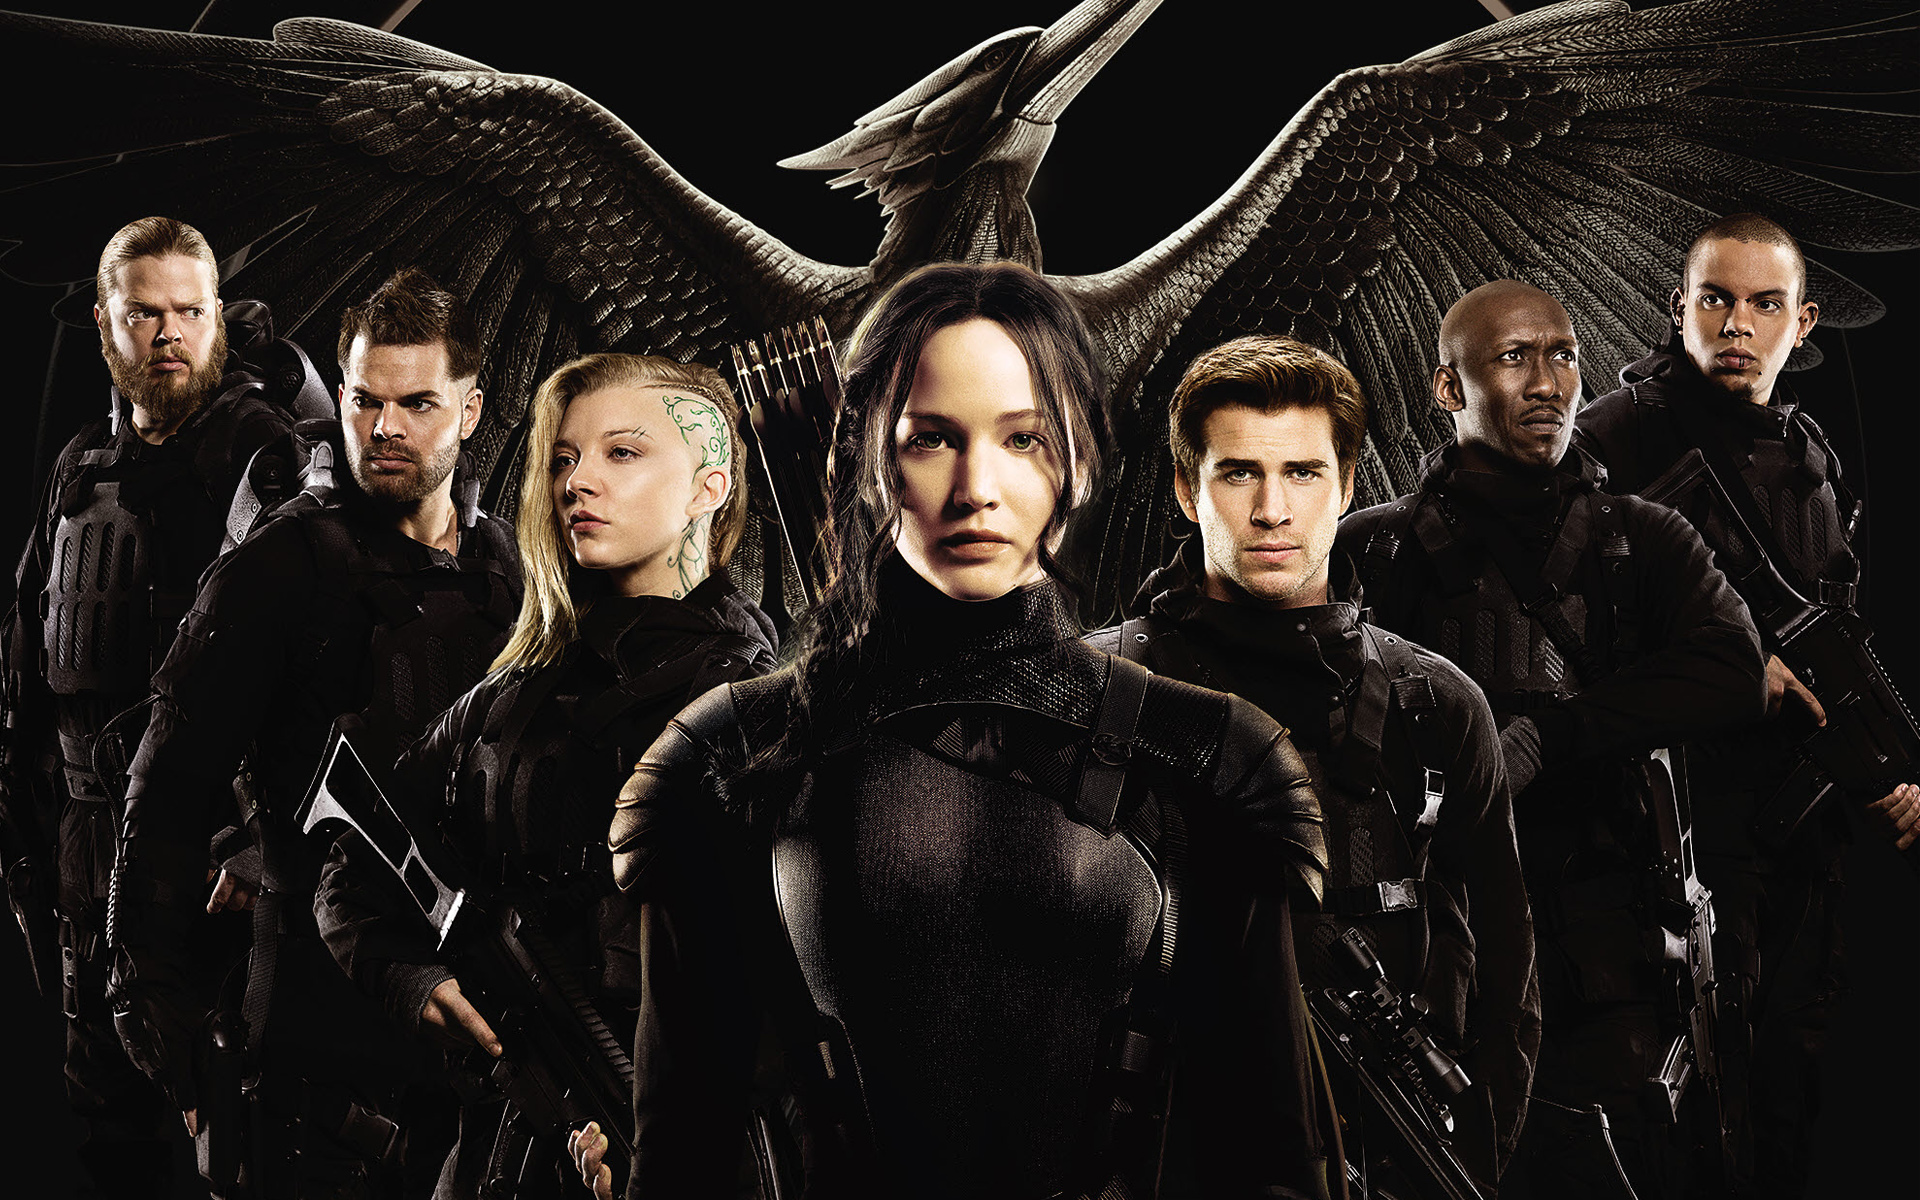 The Hunger Games Mockingjay Part 1 Movie Wallpapers HD Wallpapers 1920x1200